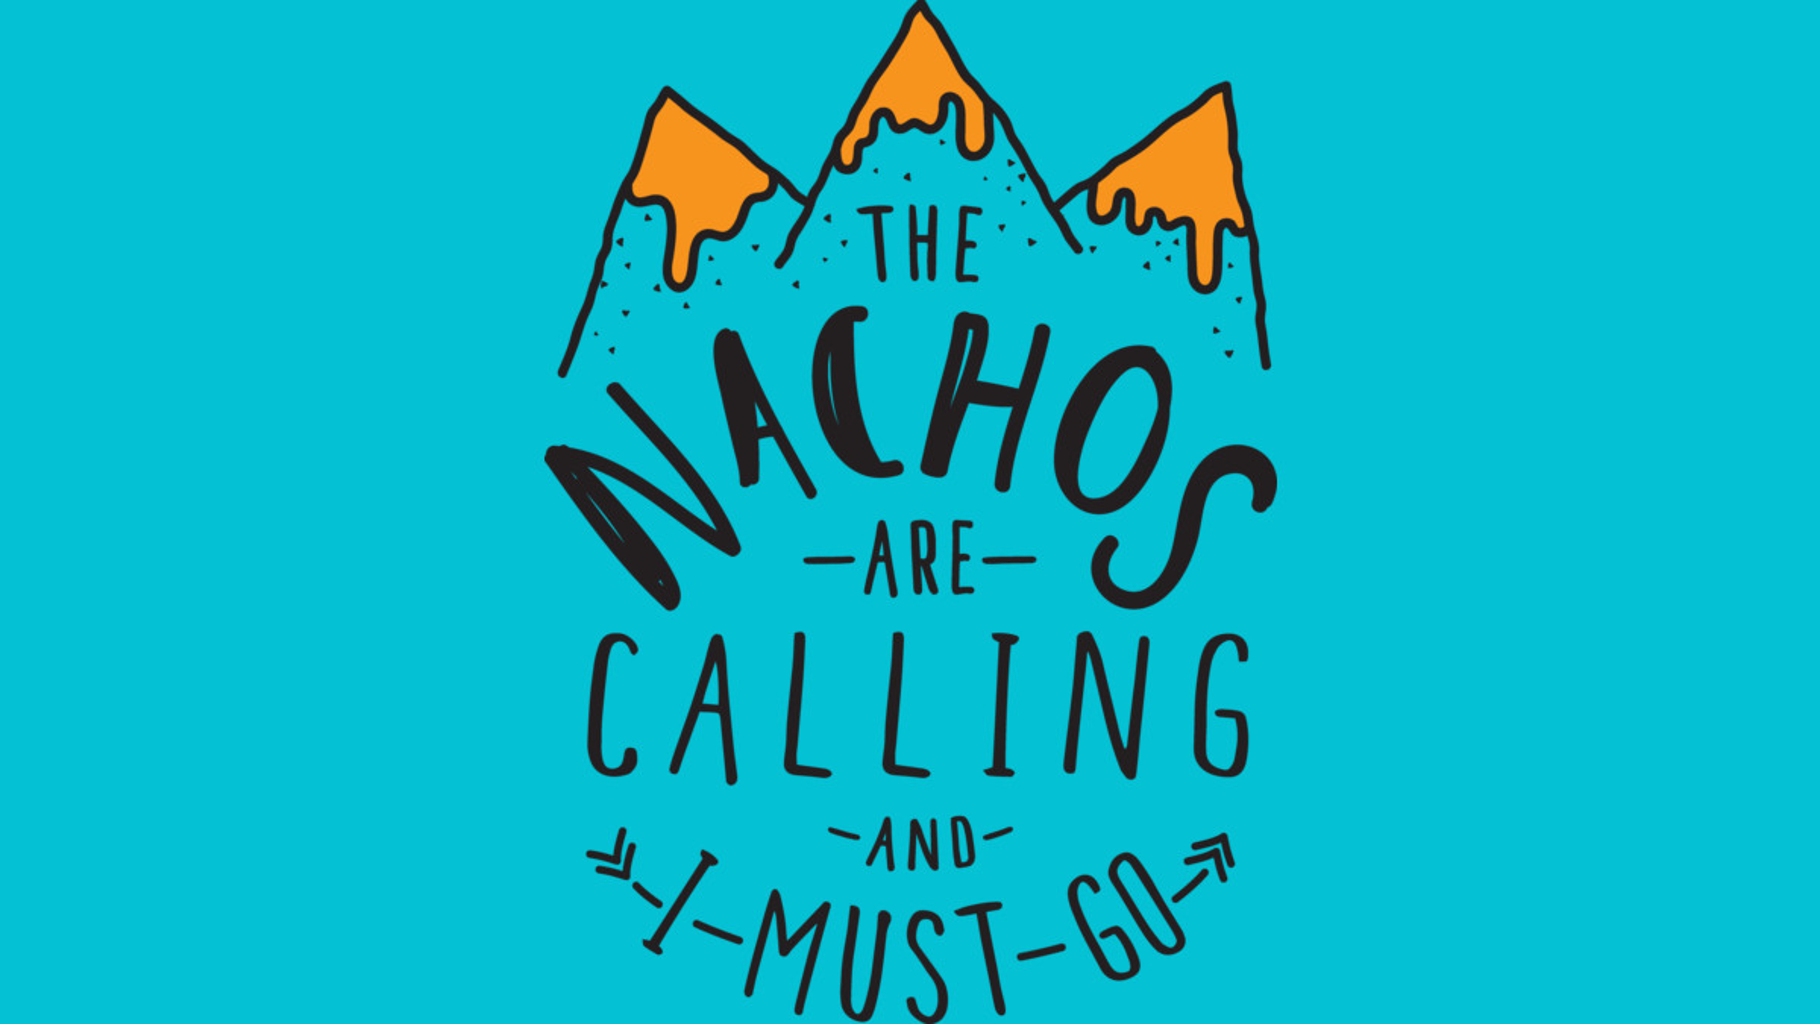 Design by Humans: The Nachos Are Calling And I Must Go